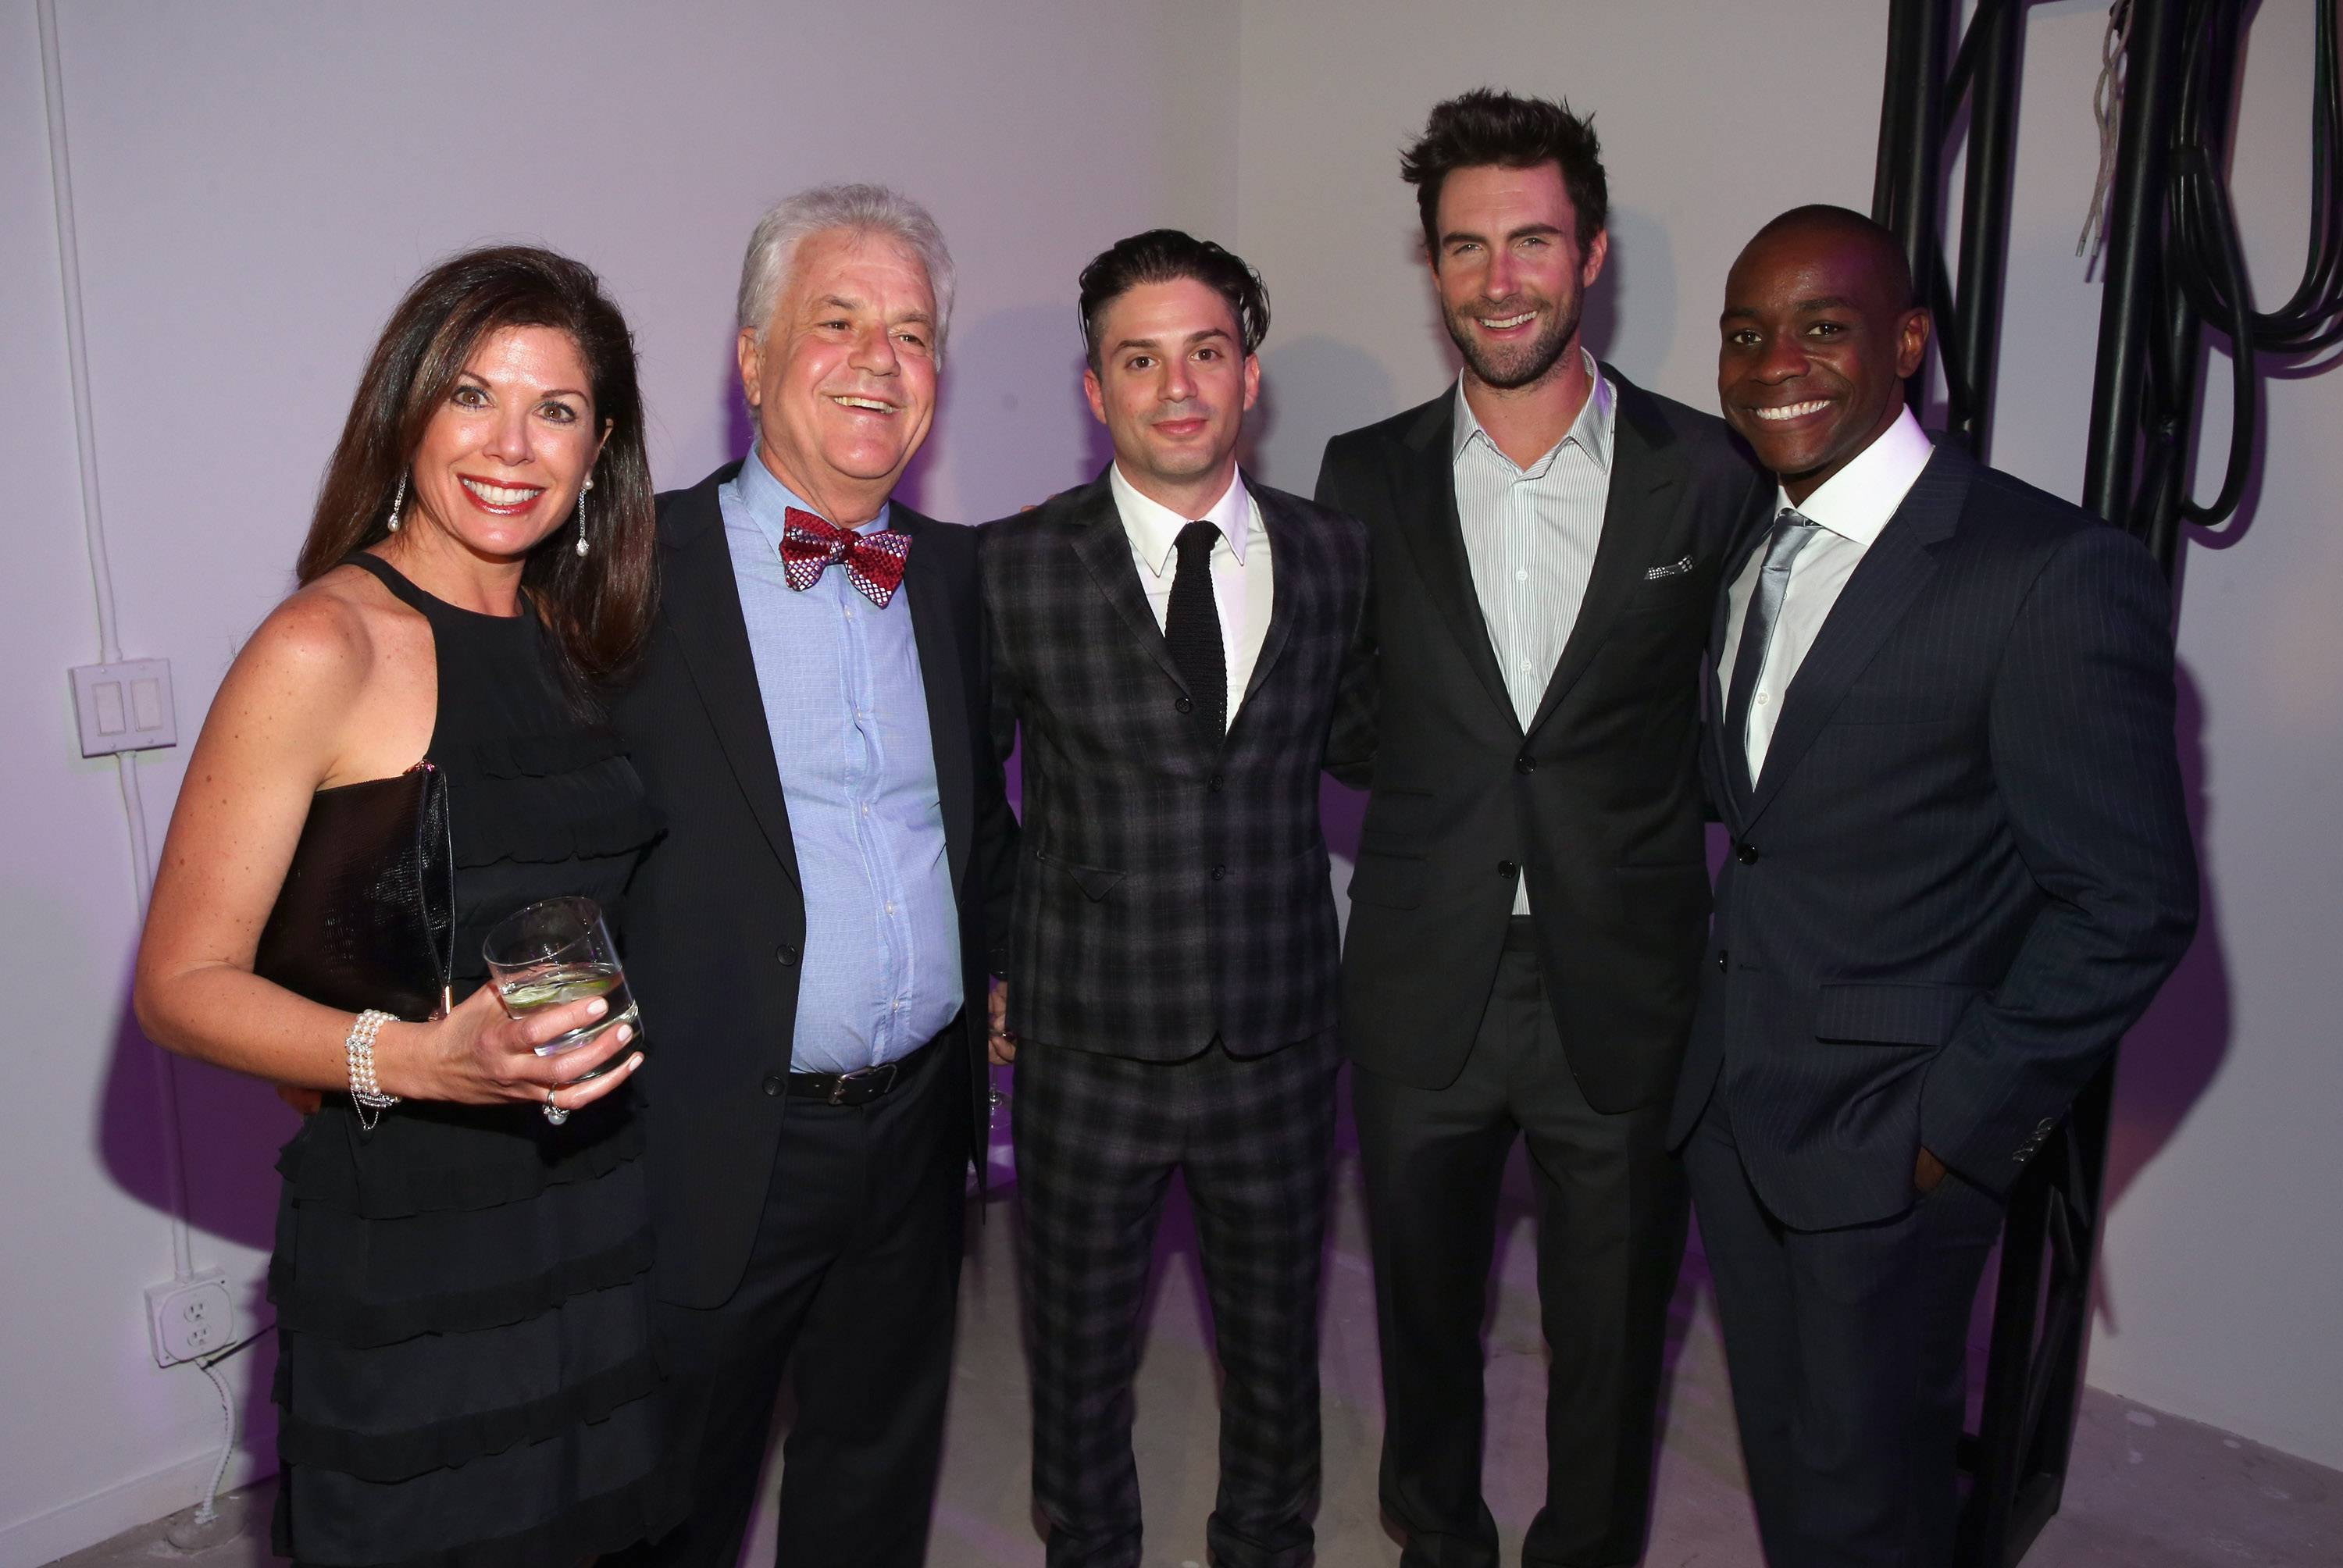 Adam Levine Launches Signature Fragrances At The Premier Fragrance Installation